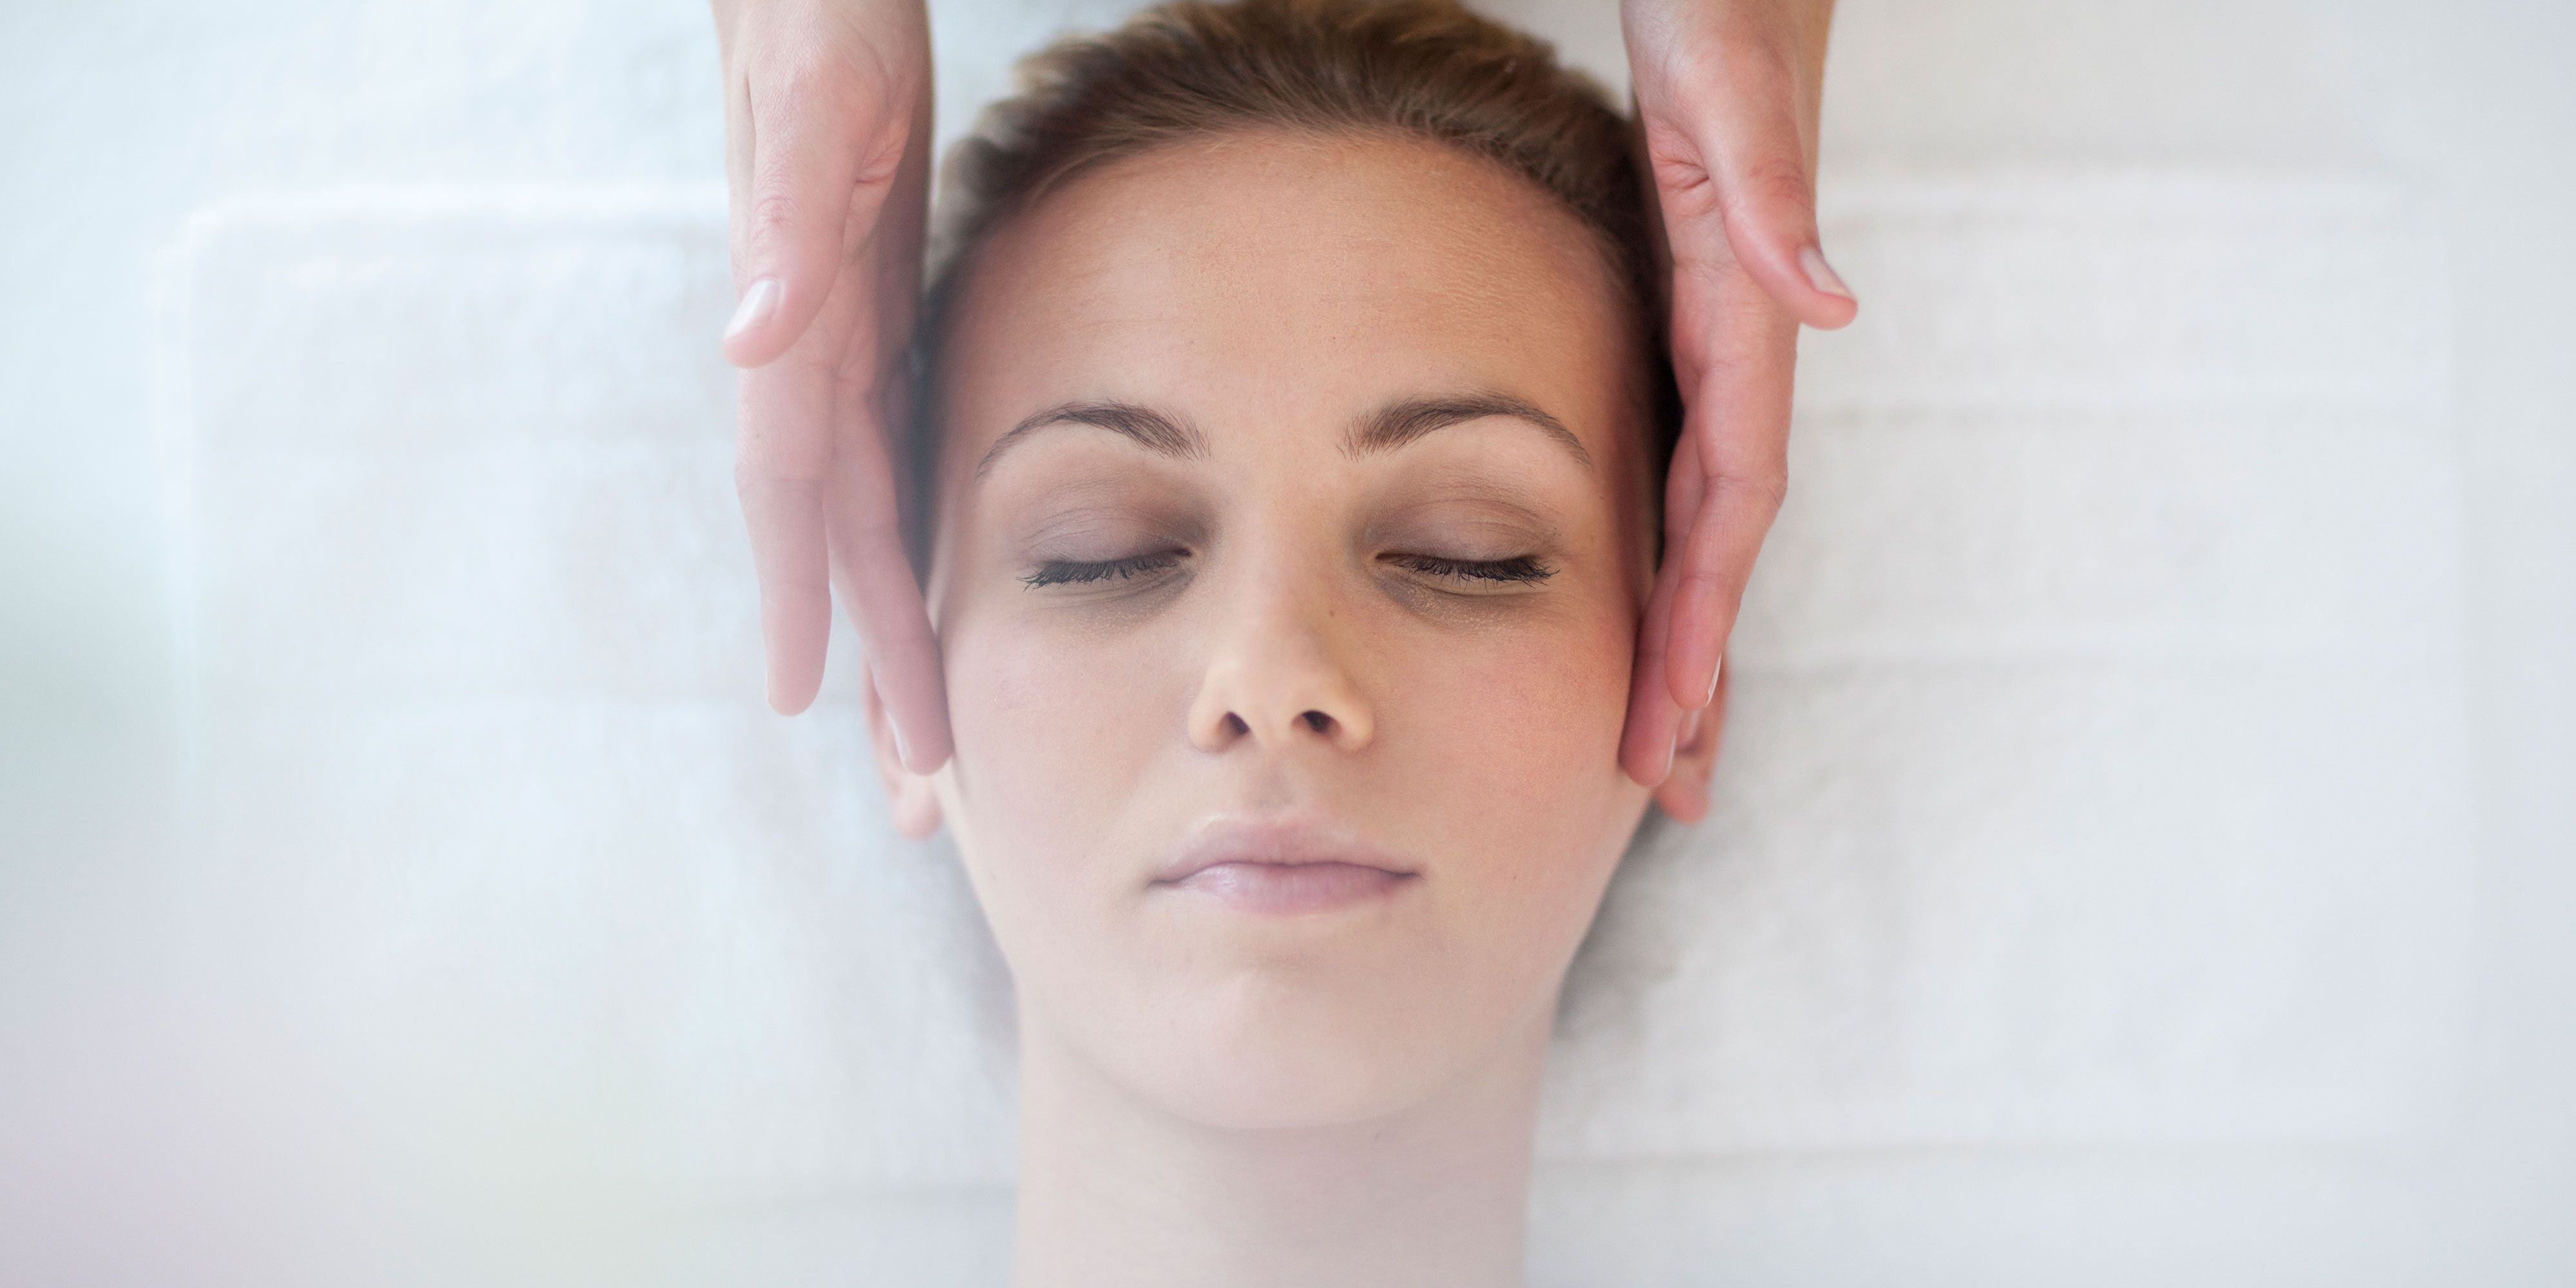 A Study Related the Benefits of Yoga for Face Skin Conducted